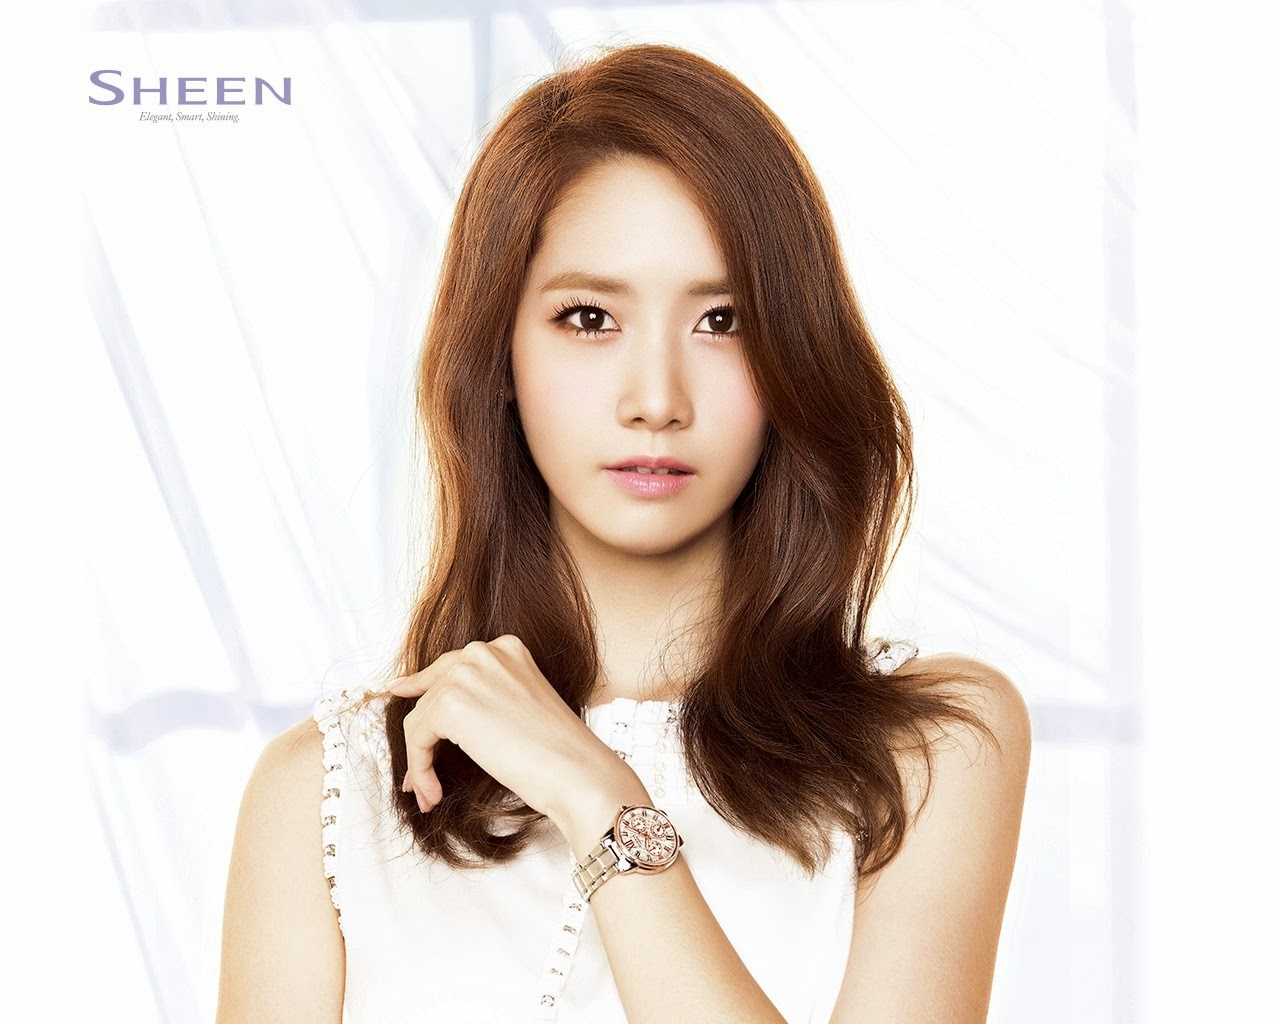 Yoona Girls' Generation SNSD Sheen Casio